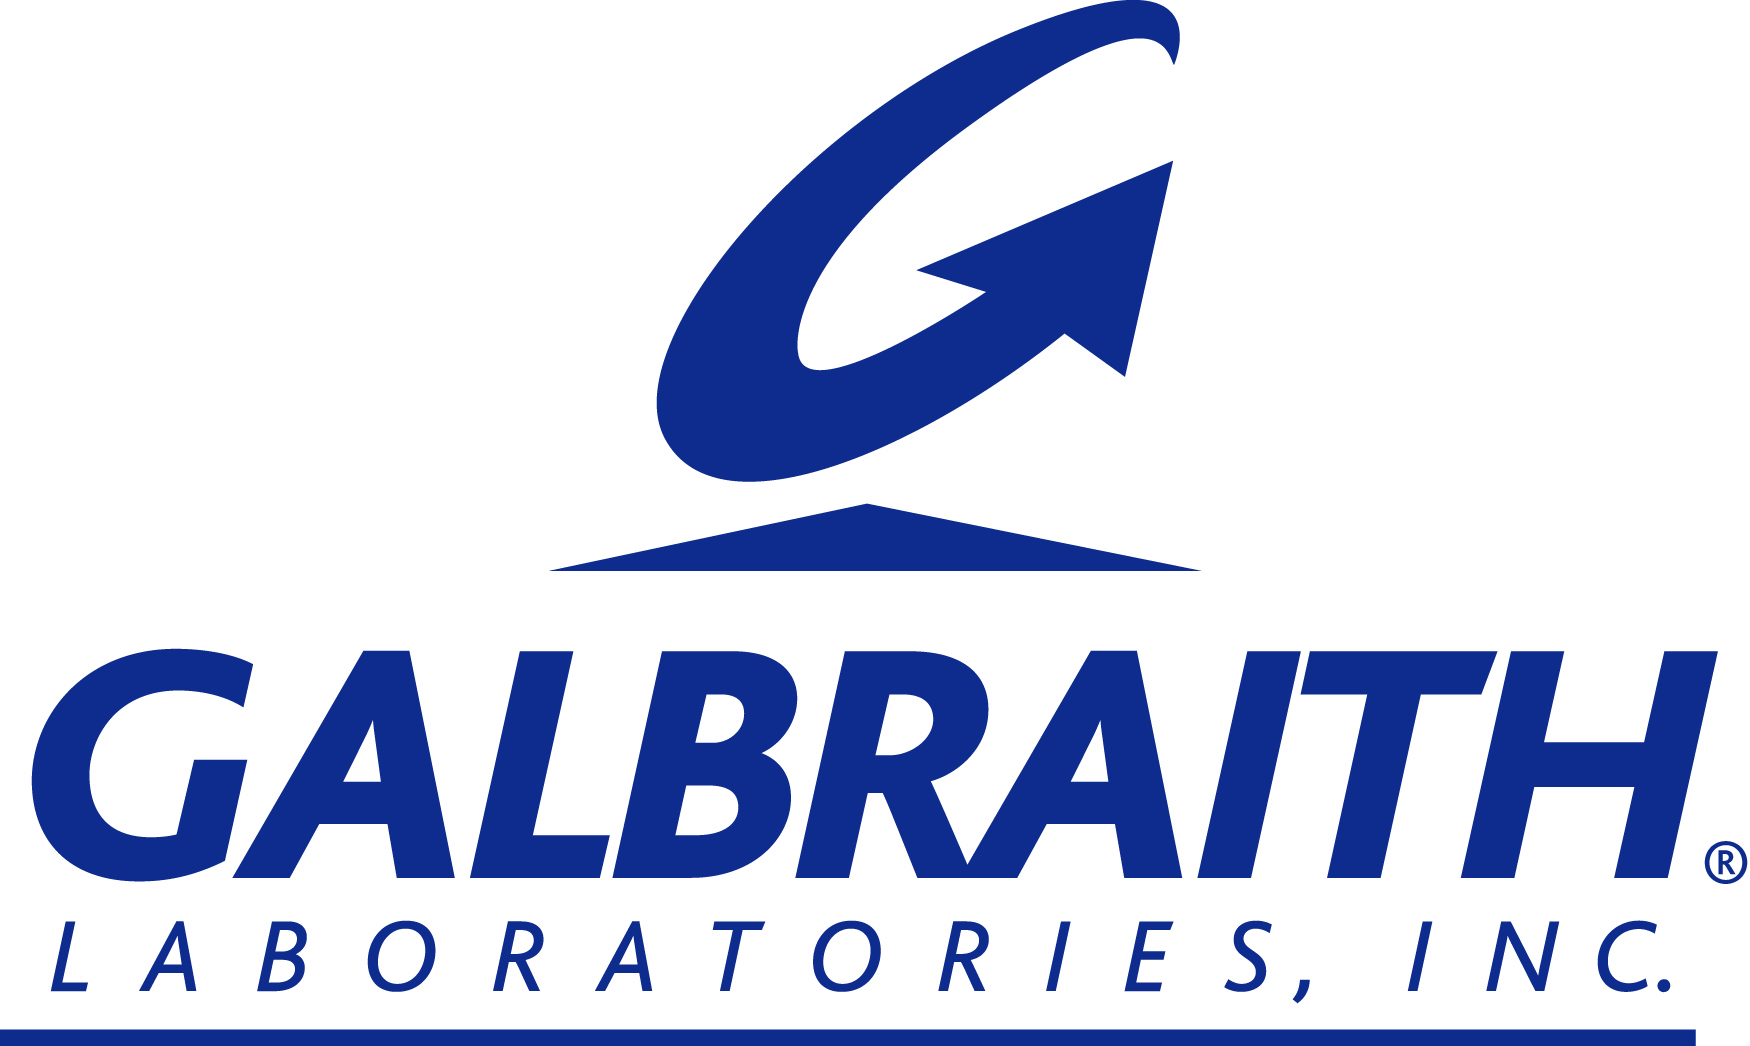 Healthcare and medical laboratories for healthcare and medical galbraith laboratories inc galbraith is a contract analytical laboratory with over 60 1betcityfo Gallery